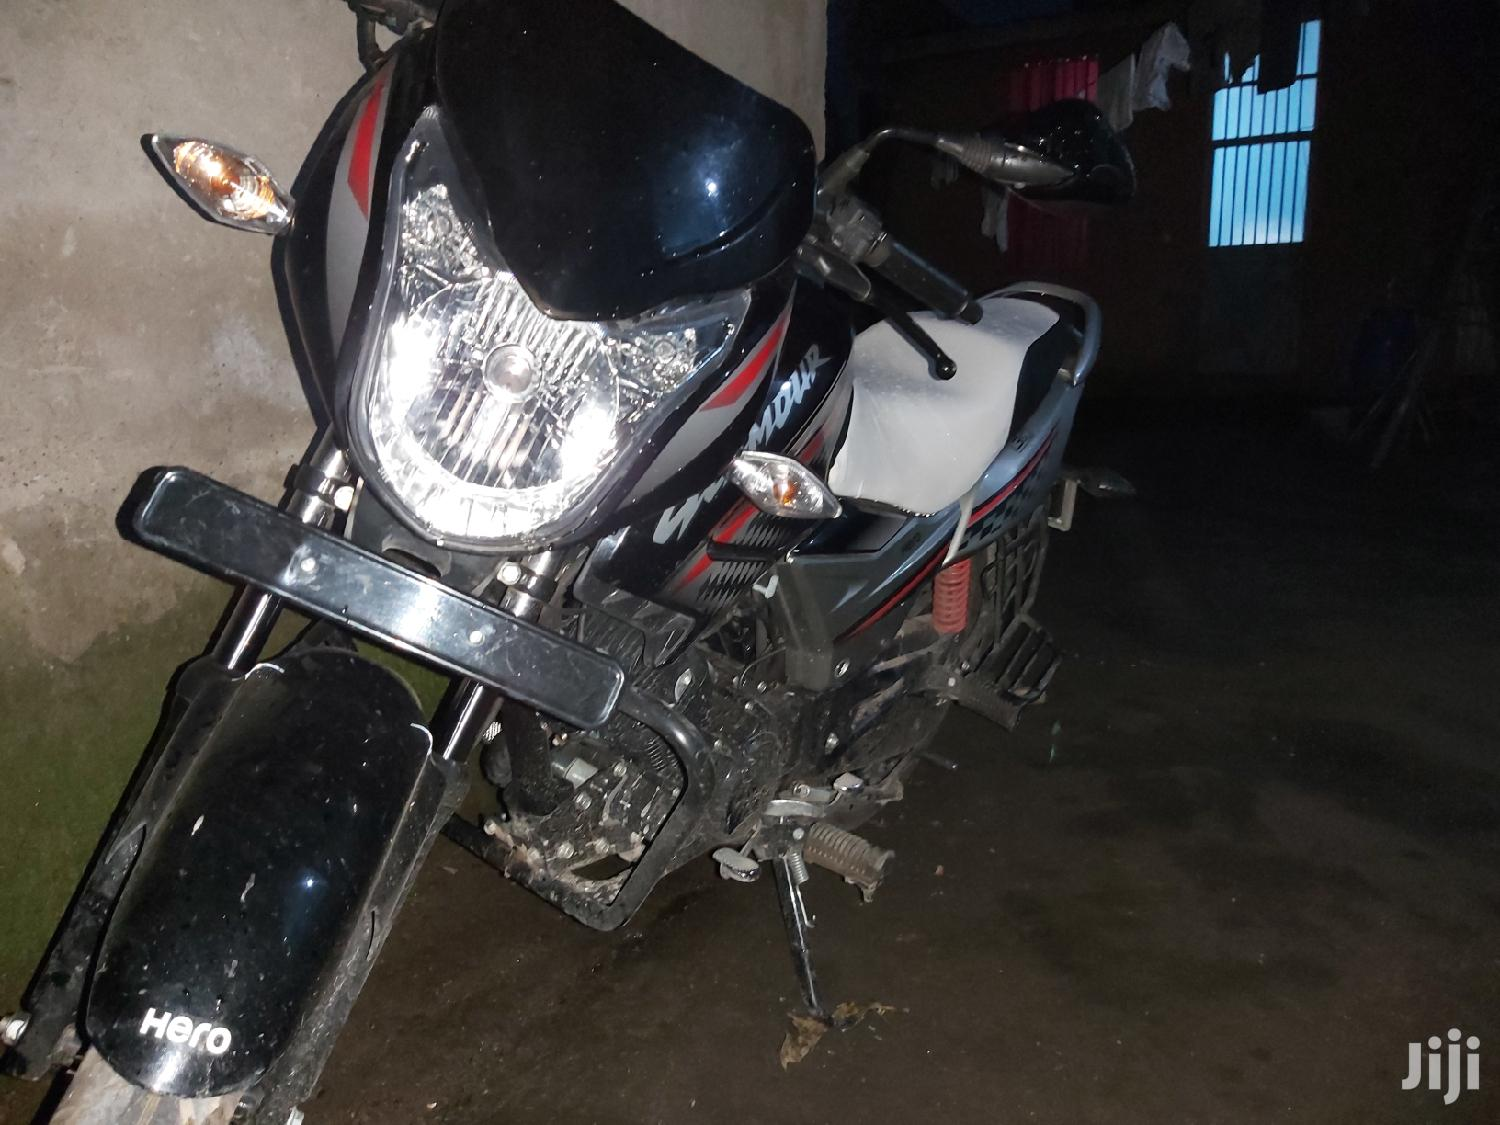 Indian 2019 | Motorcycles & Scooters for sale in Sidama, SNNPR, Ethiopia